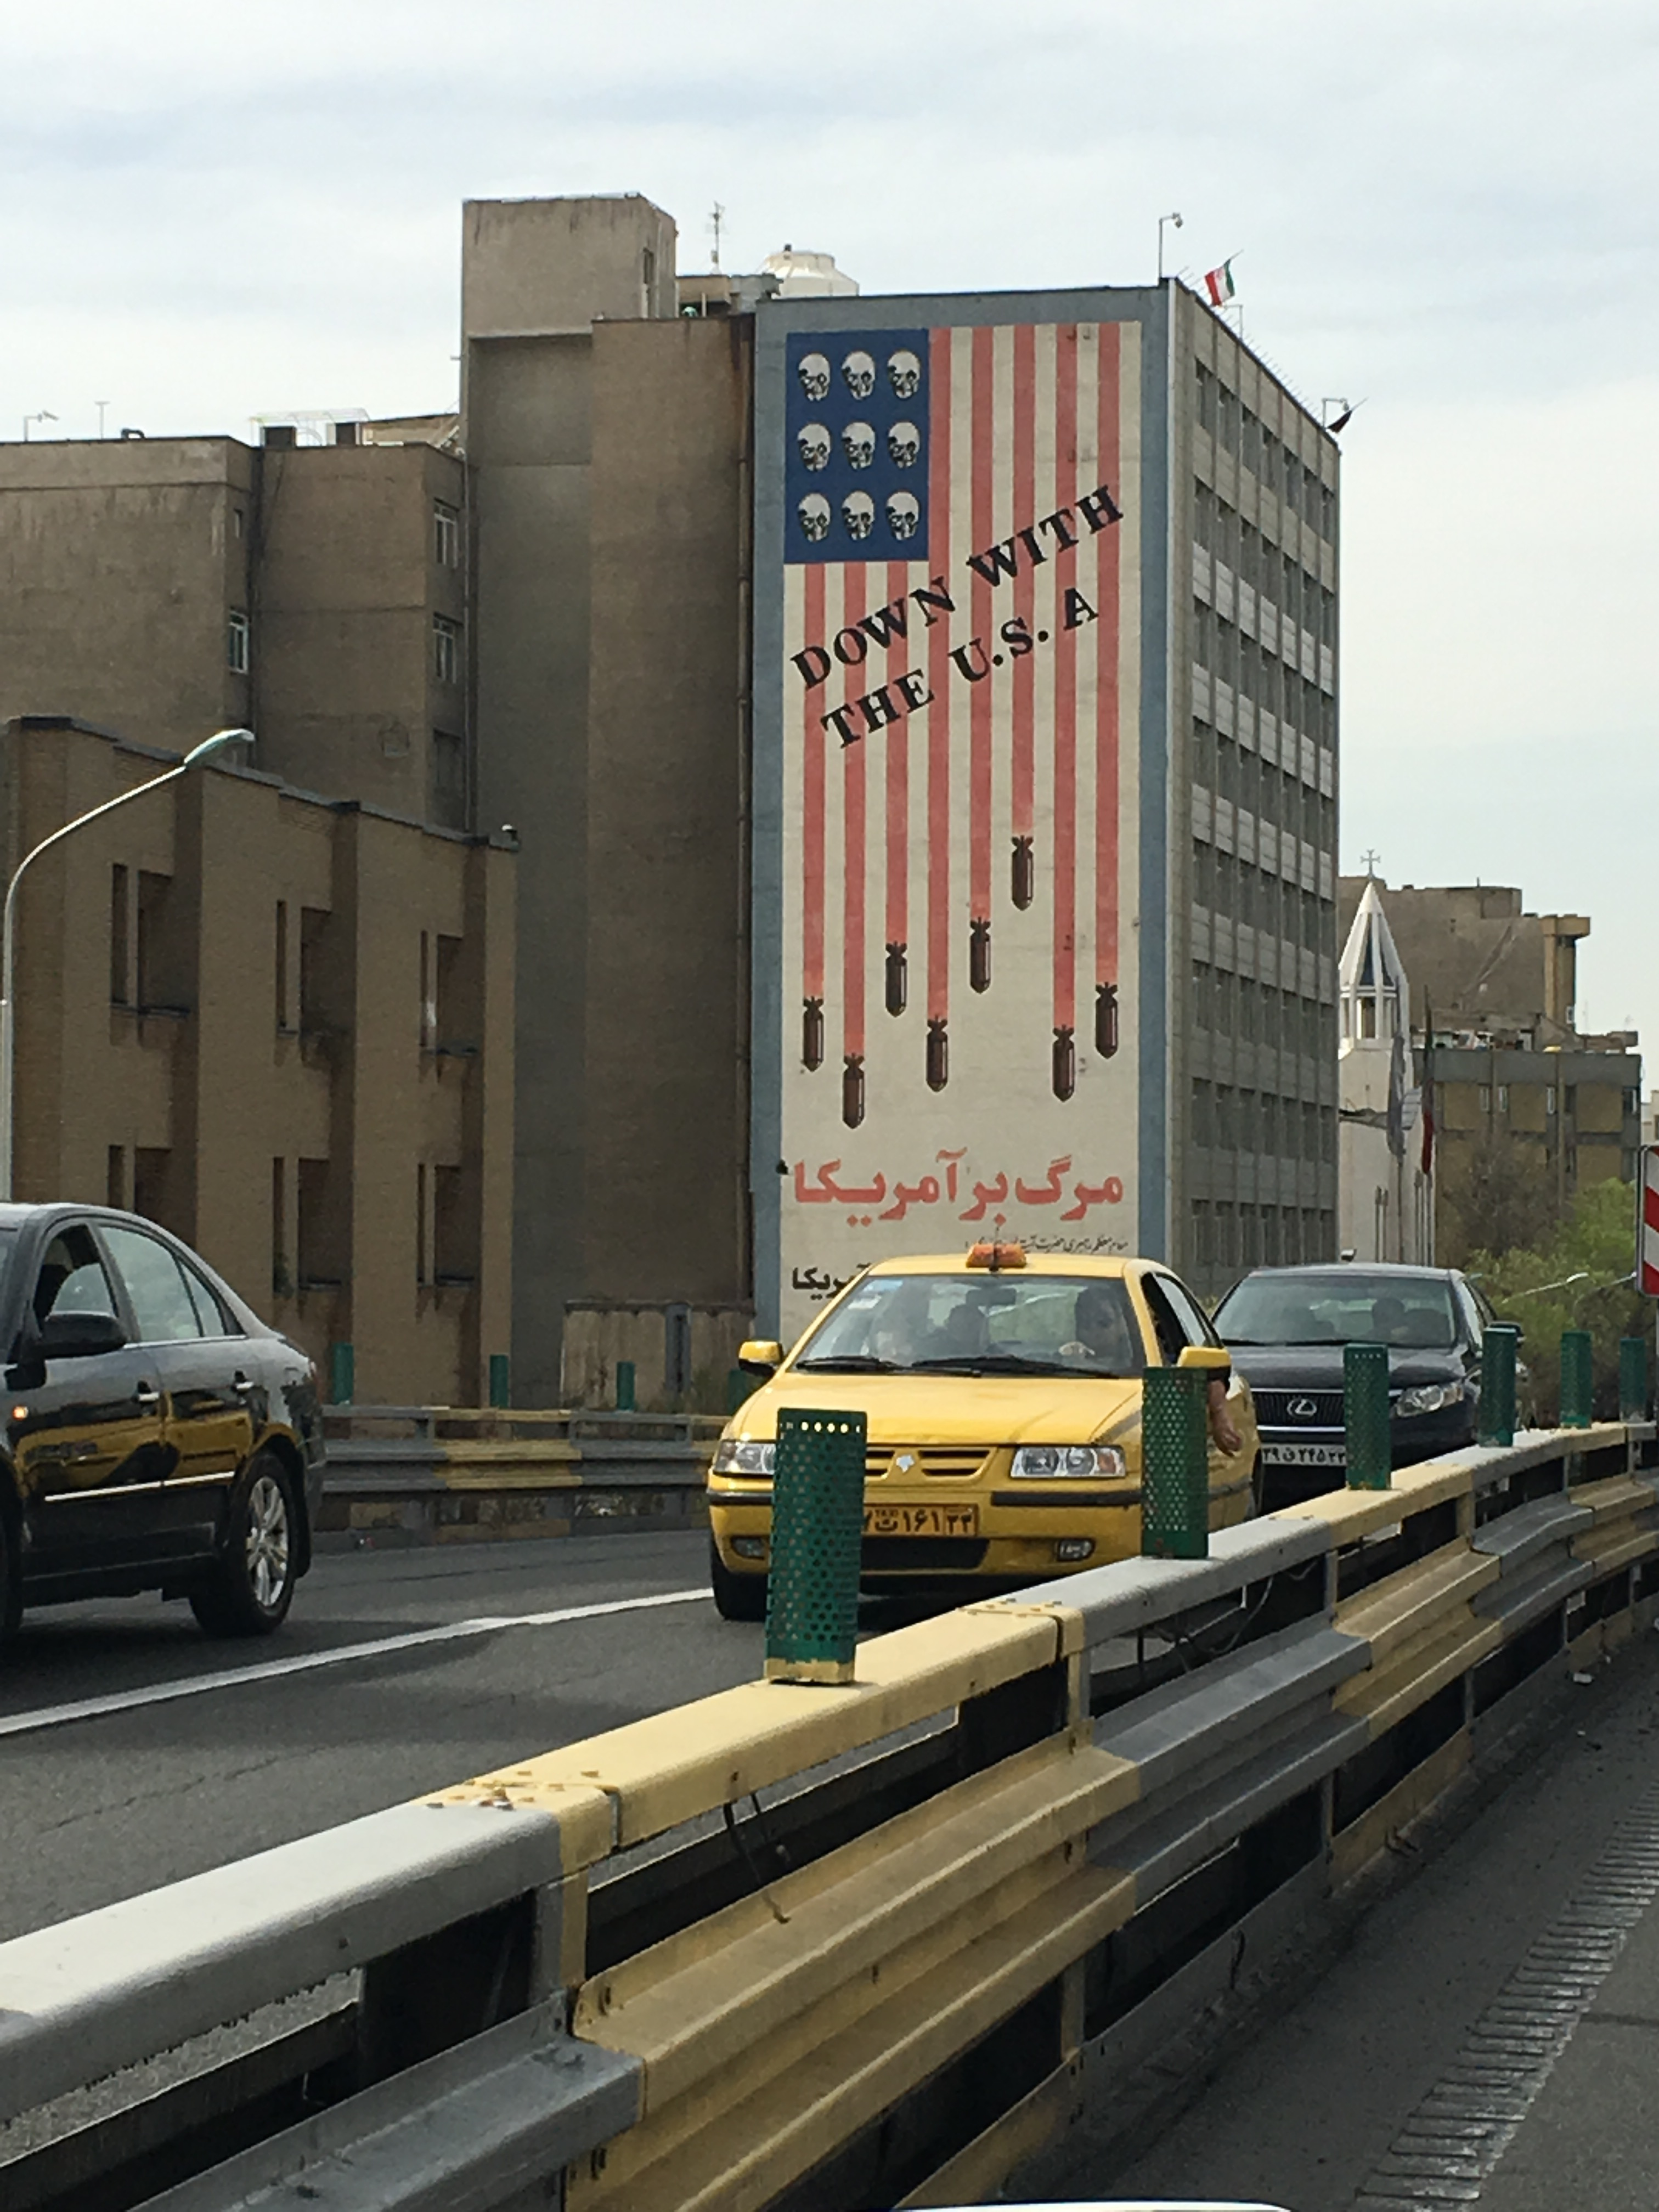 "A revolutionary mural in Tehran shows bombs and skulls on the US flag, with the words, ""We will not compromise with America, even for one second."" The decades-old mural has remained, despite Iran's nuclear deal with the West."